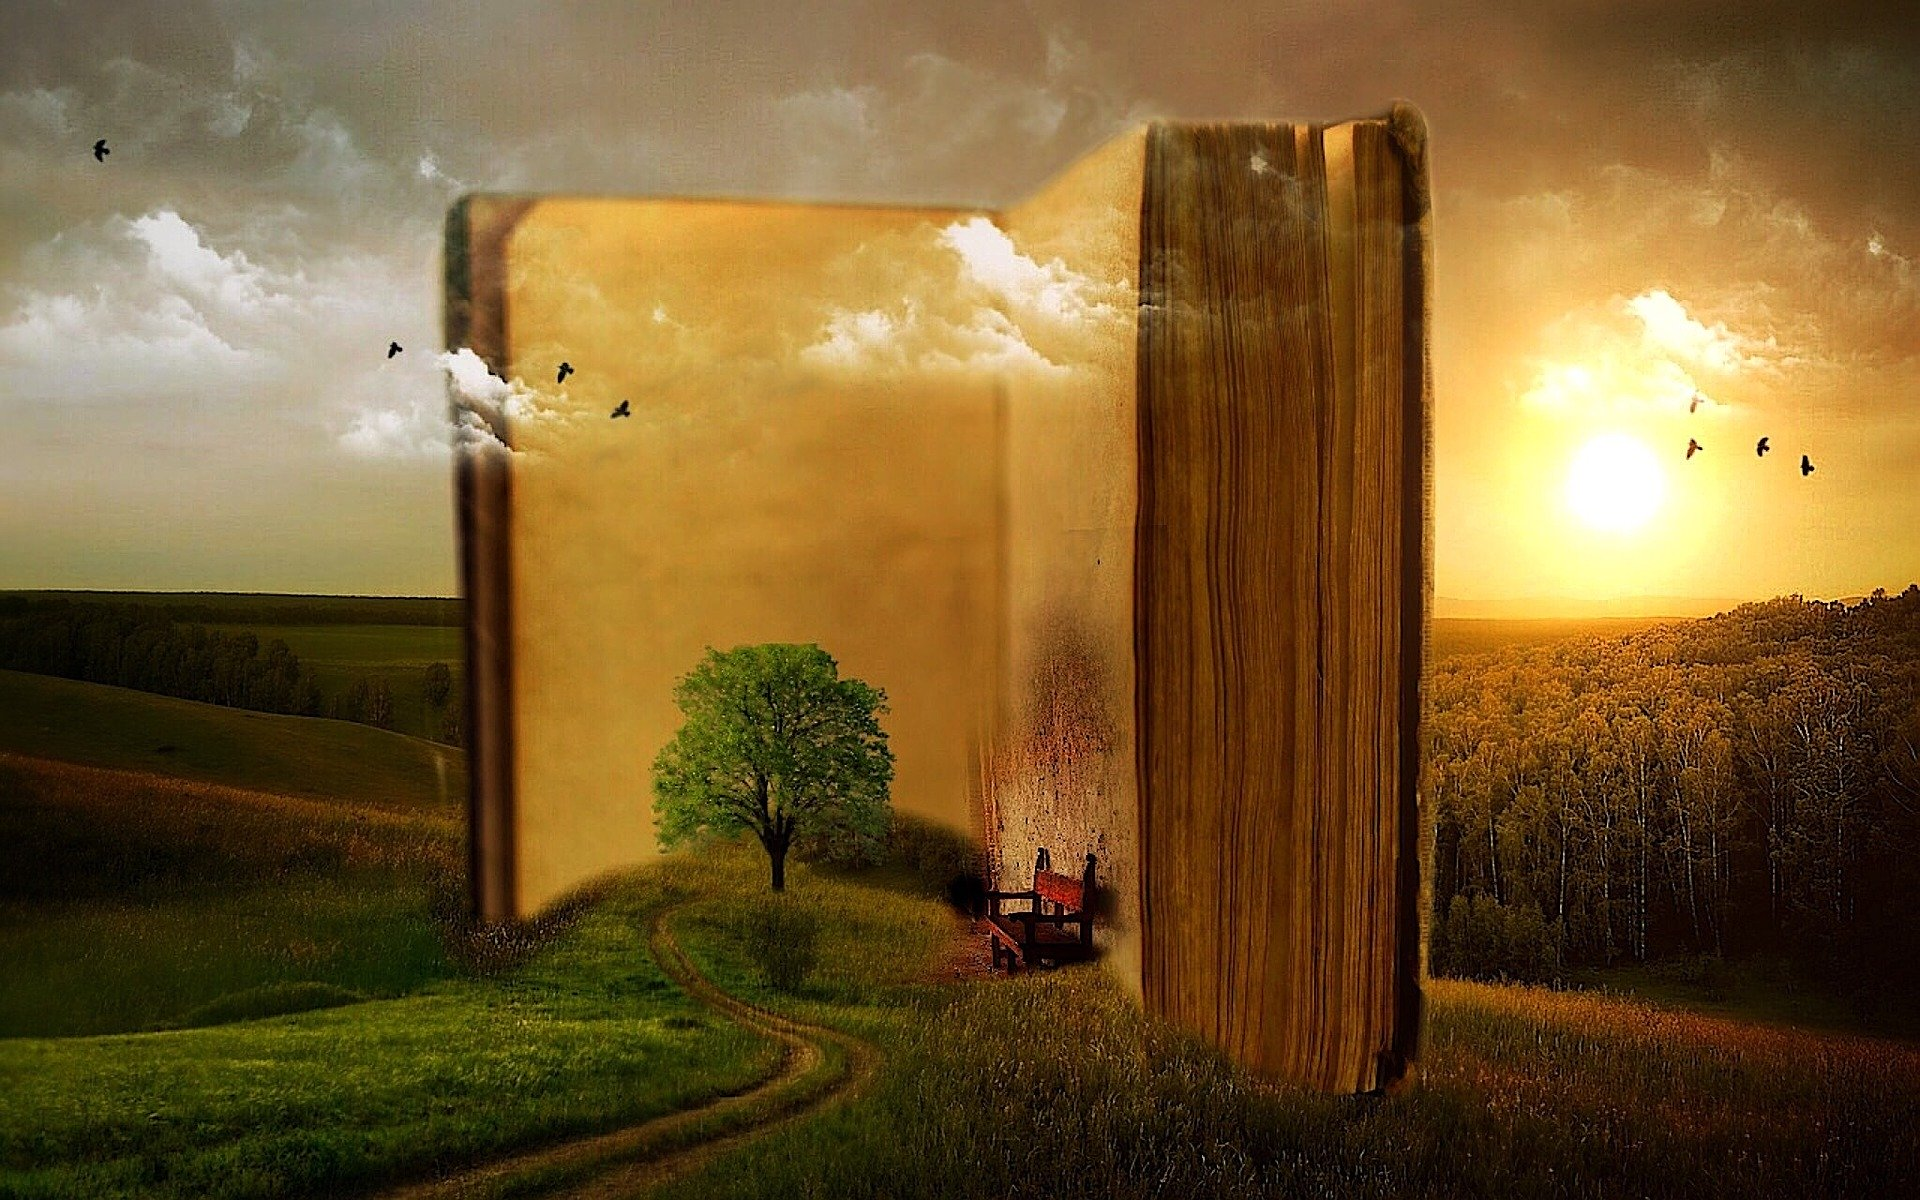 Picture of a book with story elements emerging from the pages